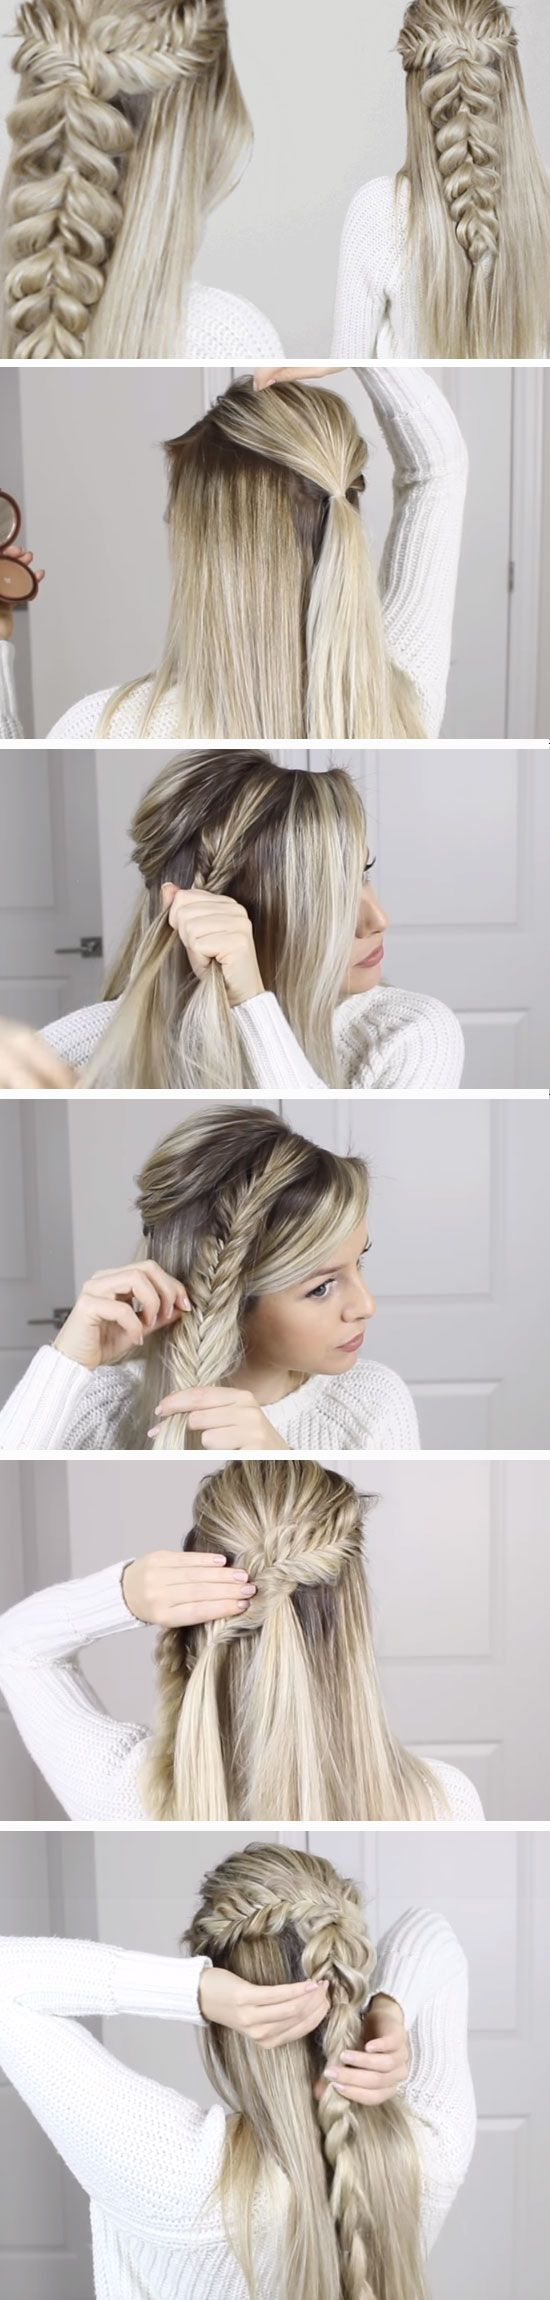 3097 best Hair Tutorials images on Pinterest | Coiffure facile, Cute ...